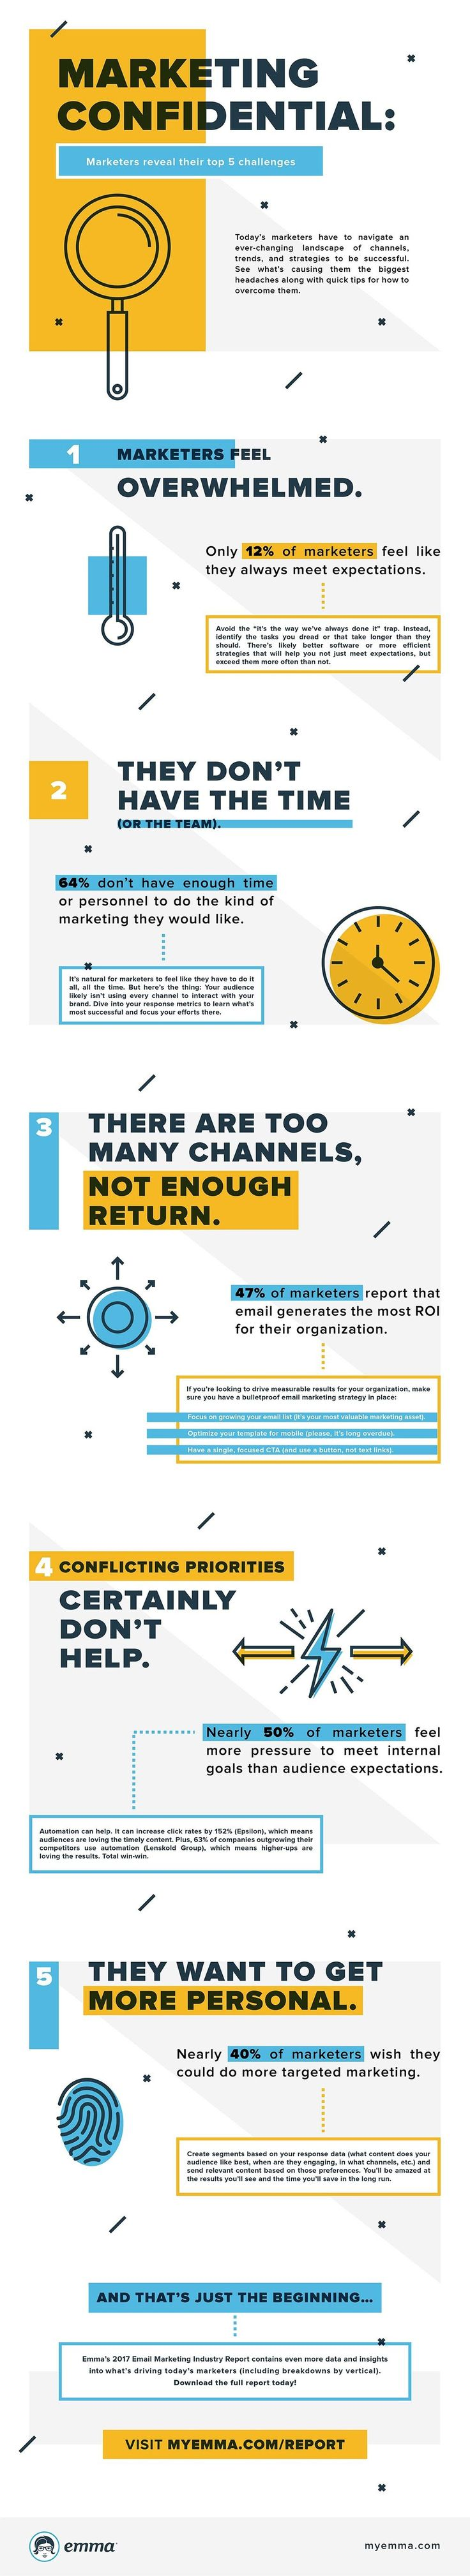 e7994dec254c08784b6b7ac0313c526c Digital Marketing : Marketing Confidential: Marketers reveal their top 5 challenges - #infographic